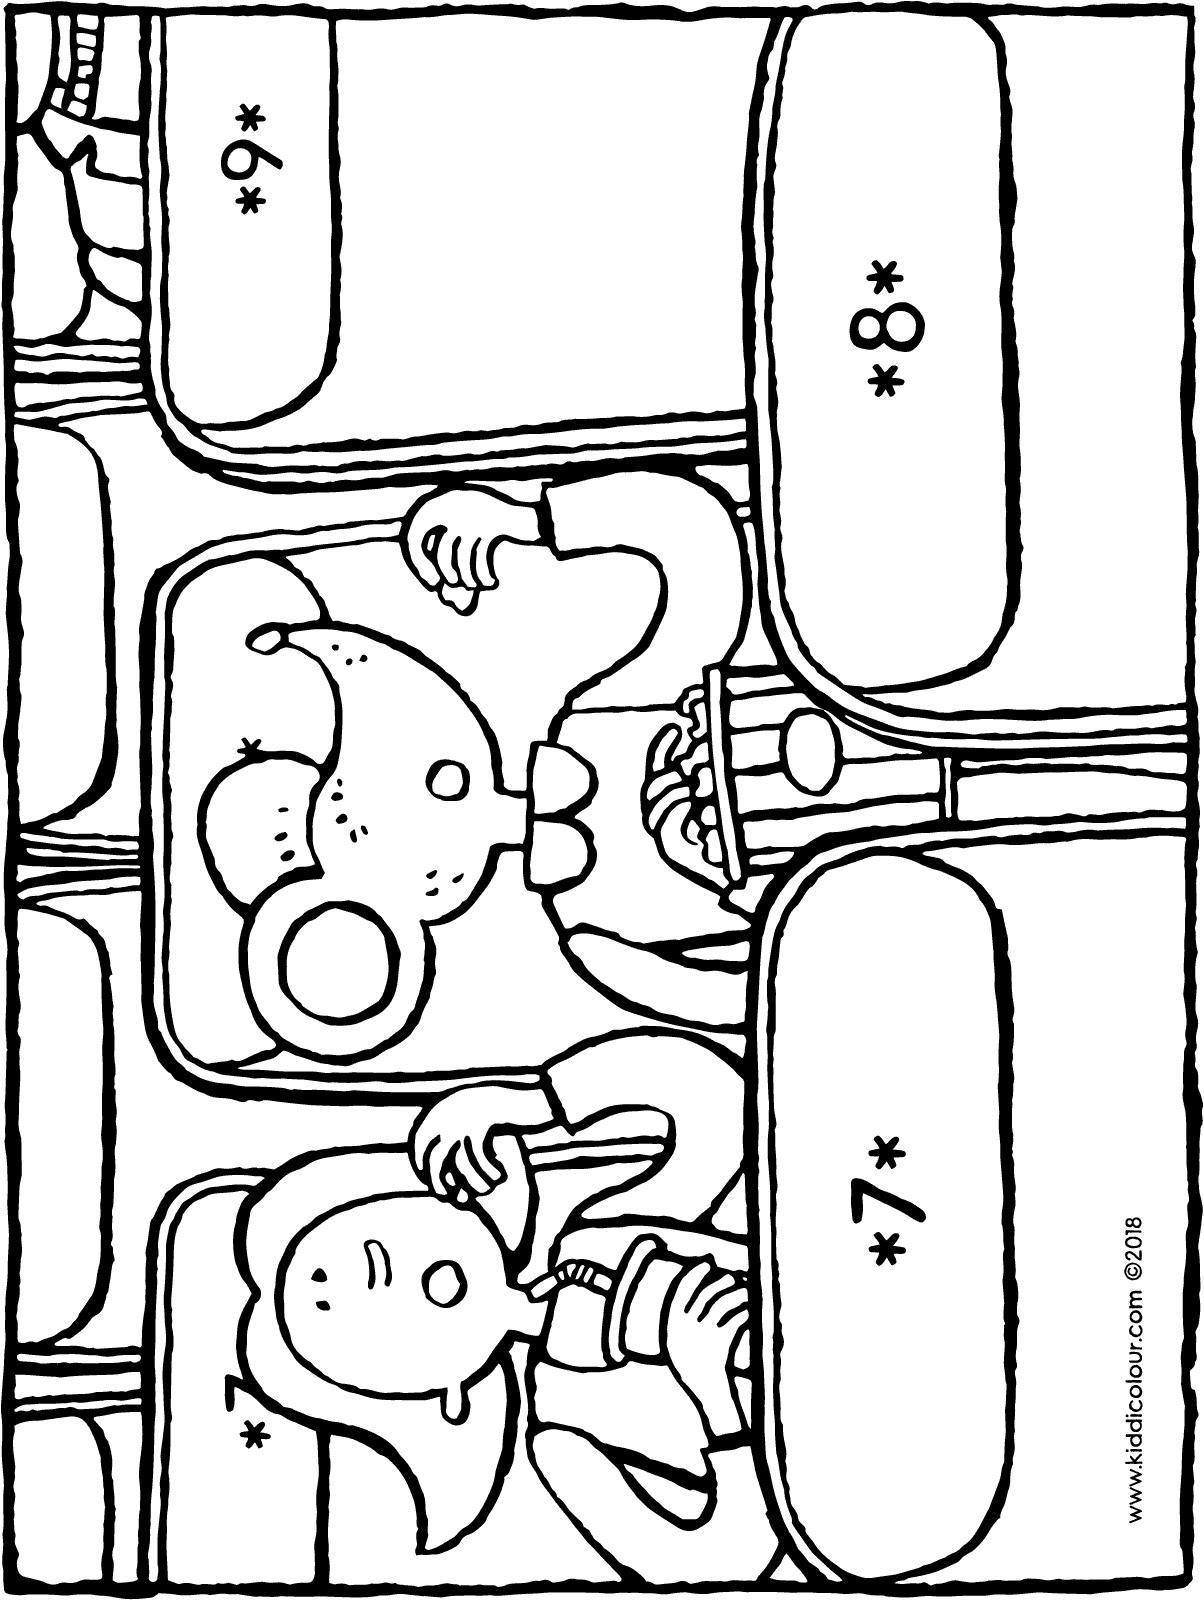 Emma and Thomas eat popcorn at the cinema colouring page drawing picture 01H